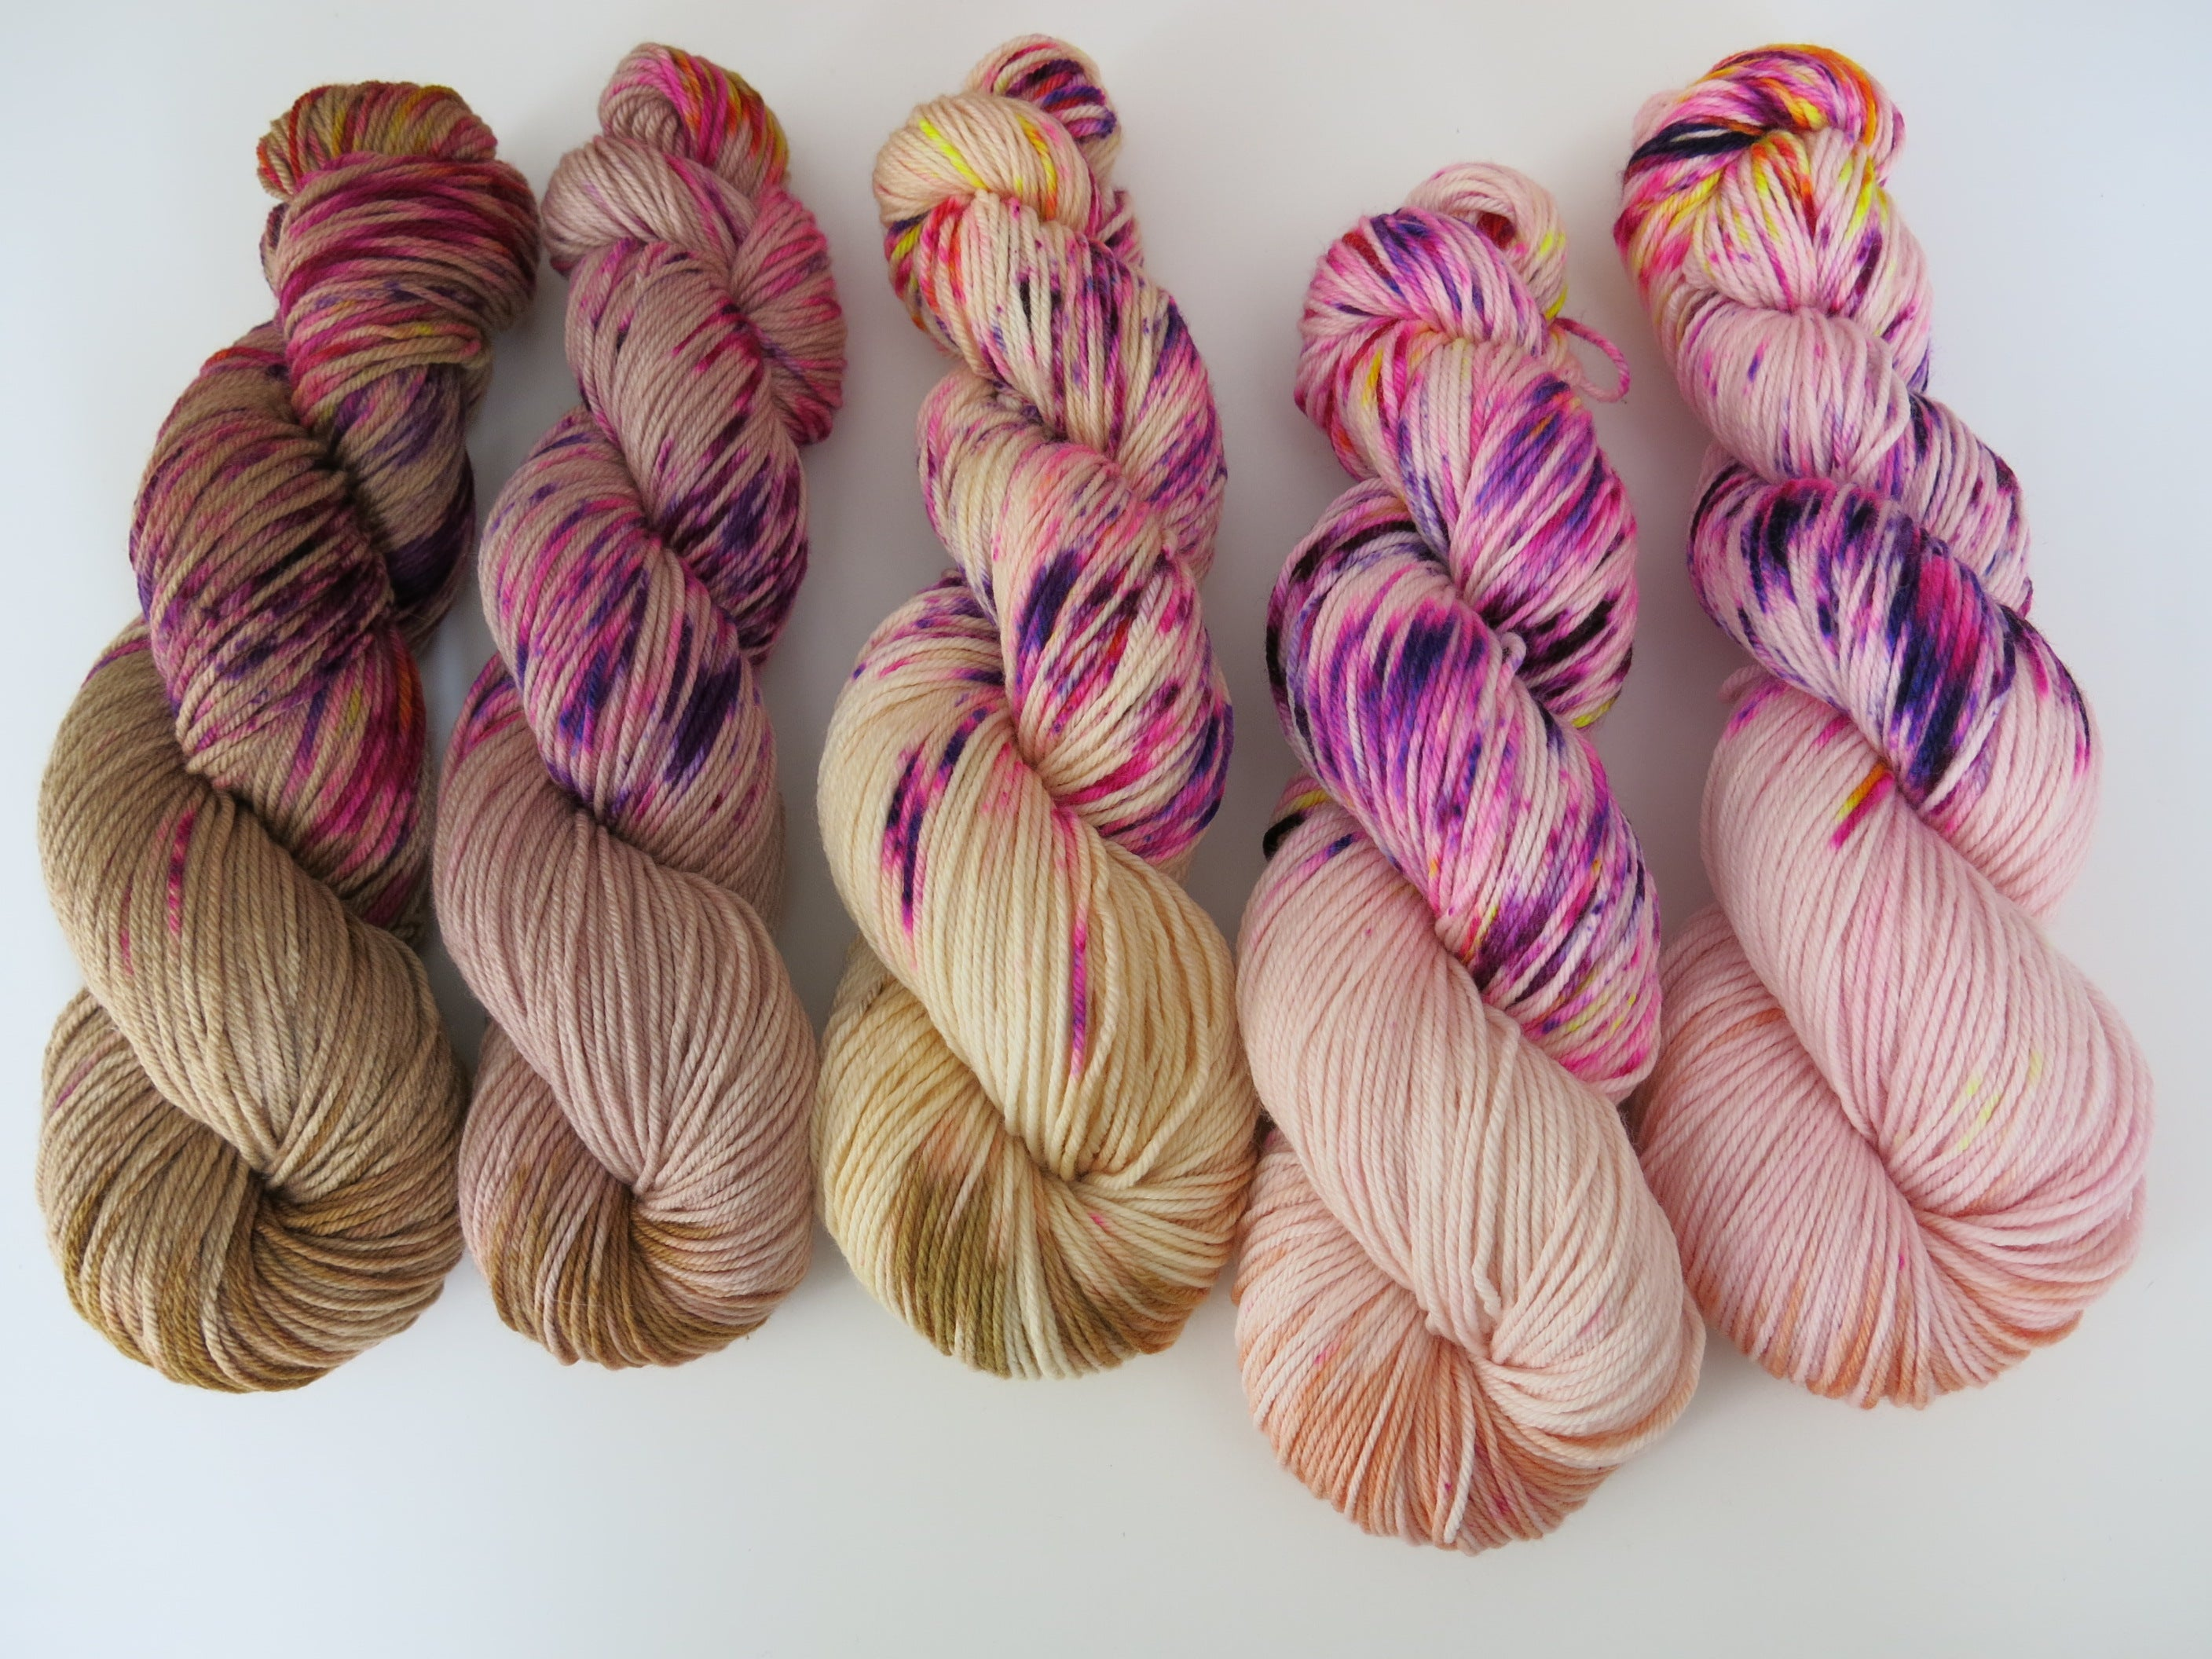 uv reactive indie dyed dk yarn with speckles